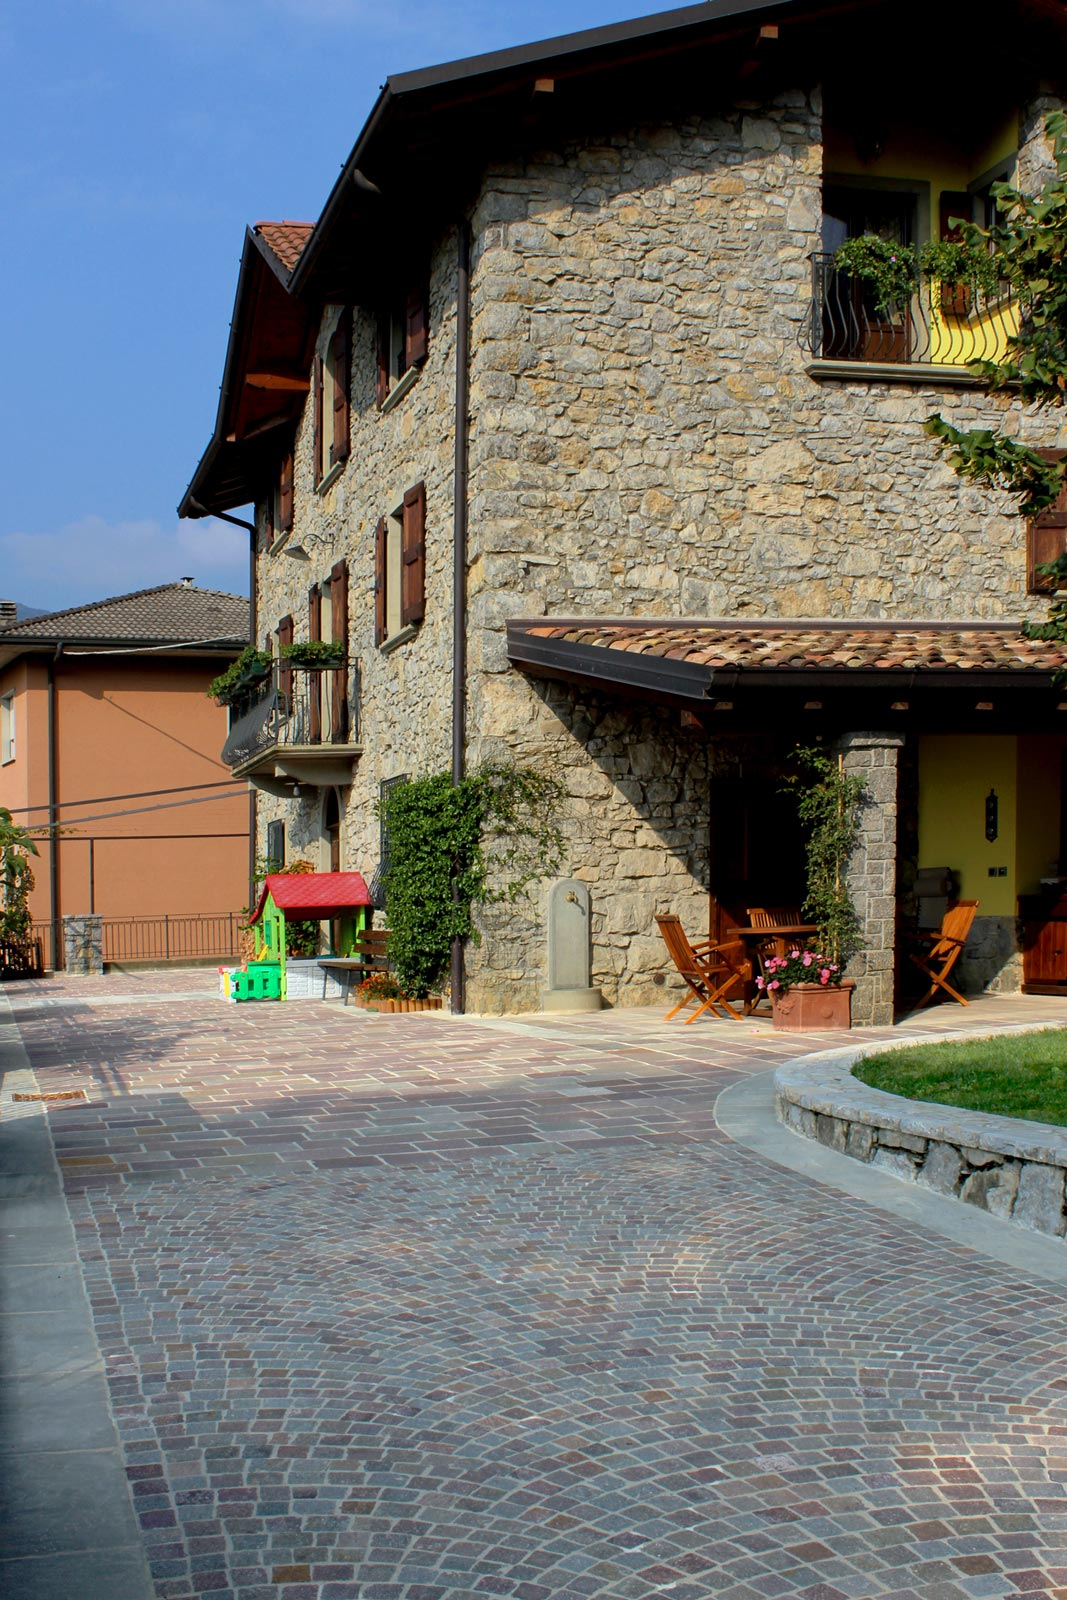 [27] Intorno ad antiche pietre - homes, porphyry, quartzarenite, grey and purple porphyry, grey quarzarenite, stone paving, pavé, stairs, ramps accessible by vehicles